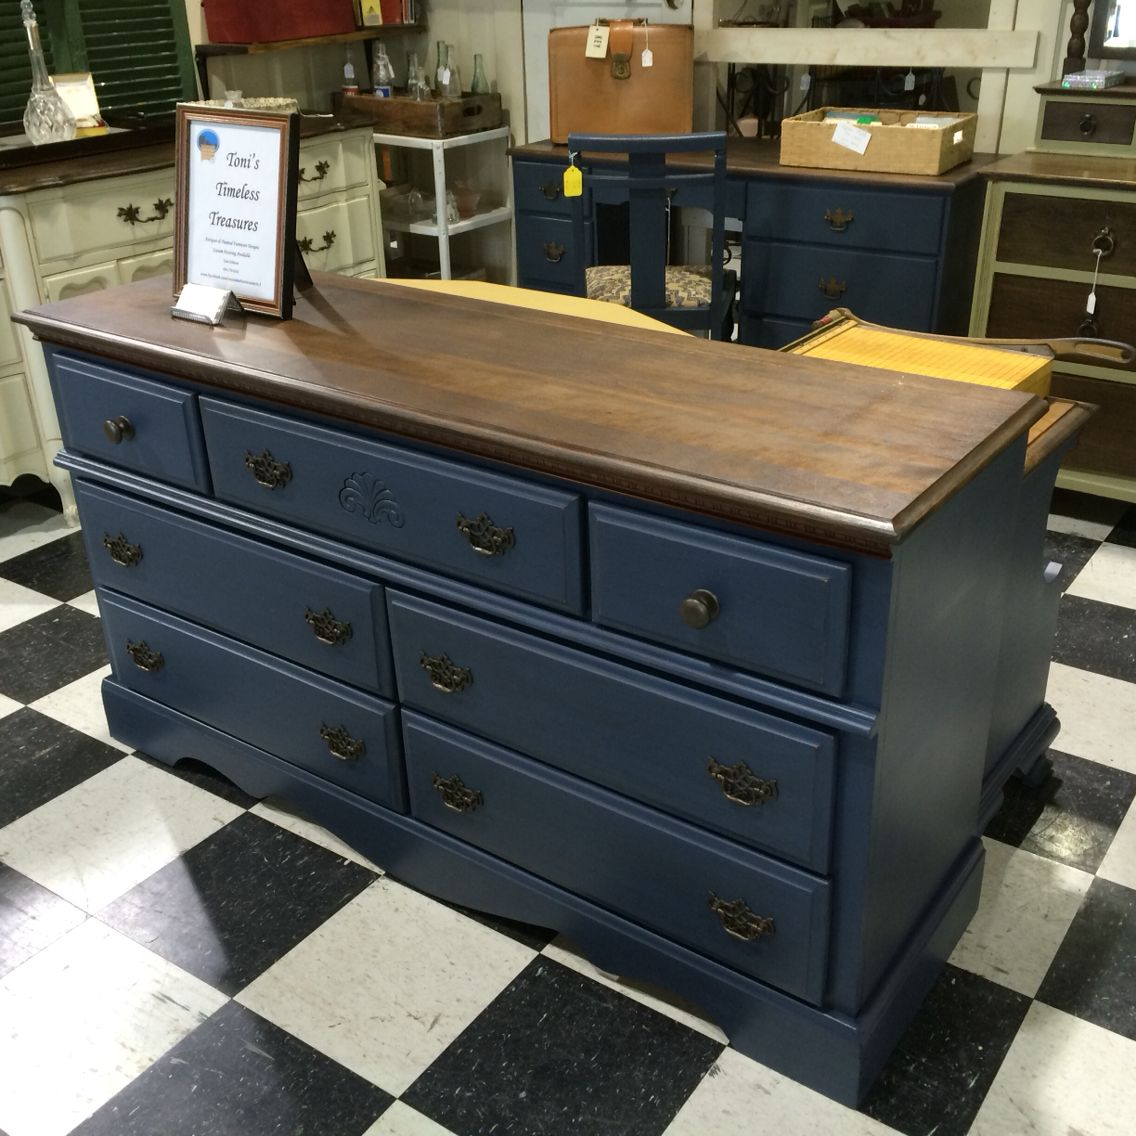 35 Best Images About Refinished Oak Tables On Pinterest: Dresser Painted Navy With Black Glaze And A Refinished